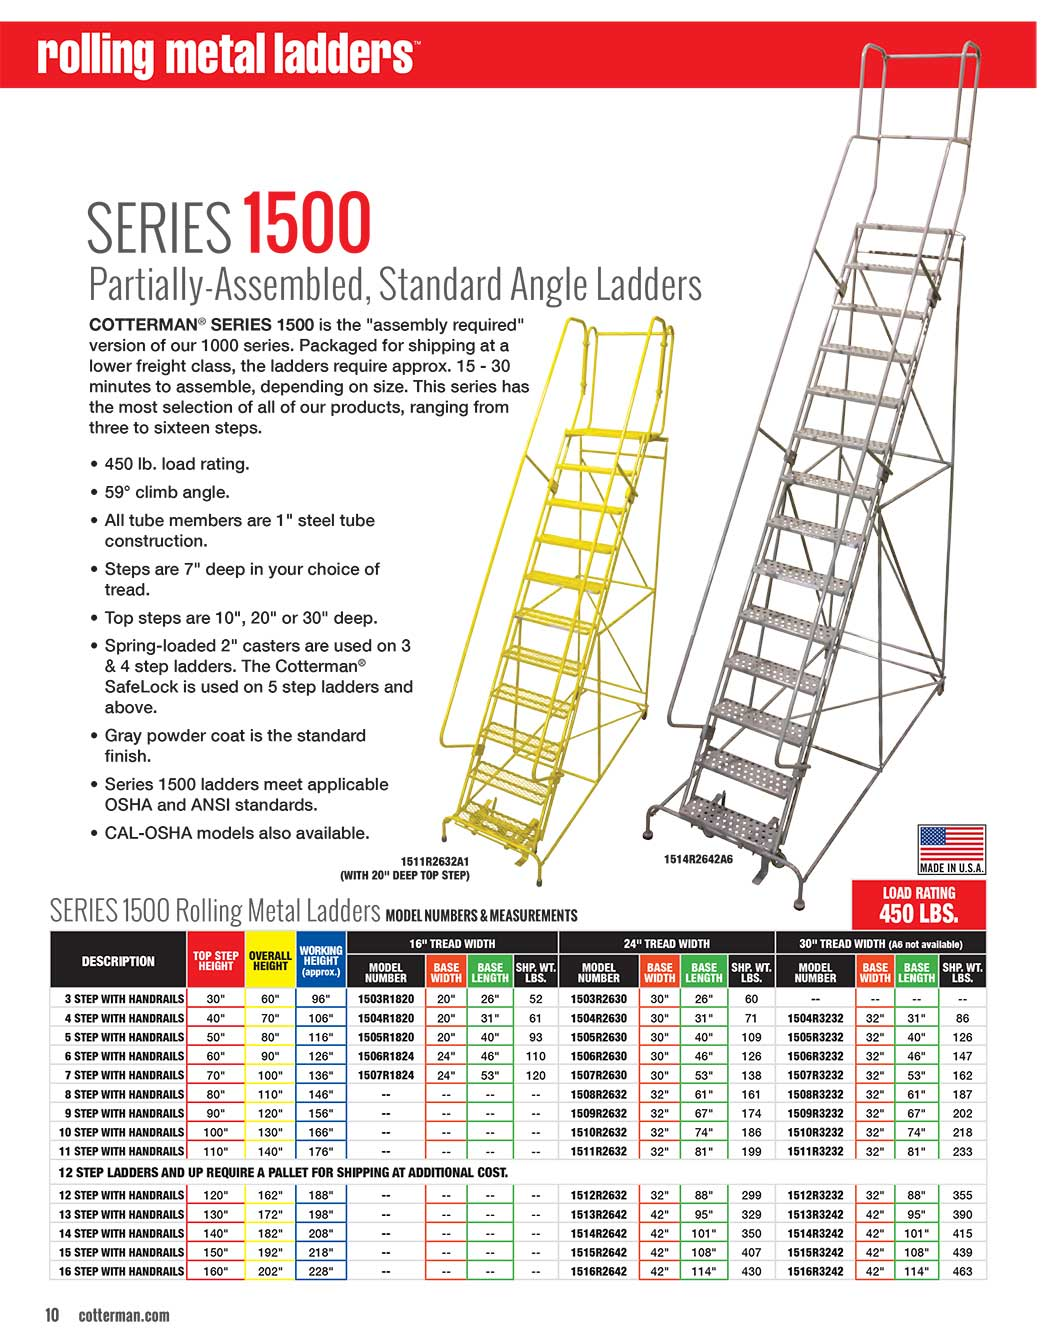 Cotterman Series 1500 Rolling Ladder Technical Specs